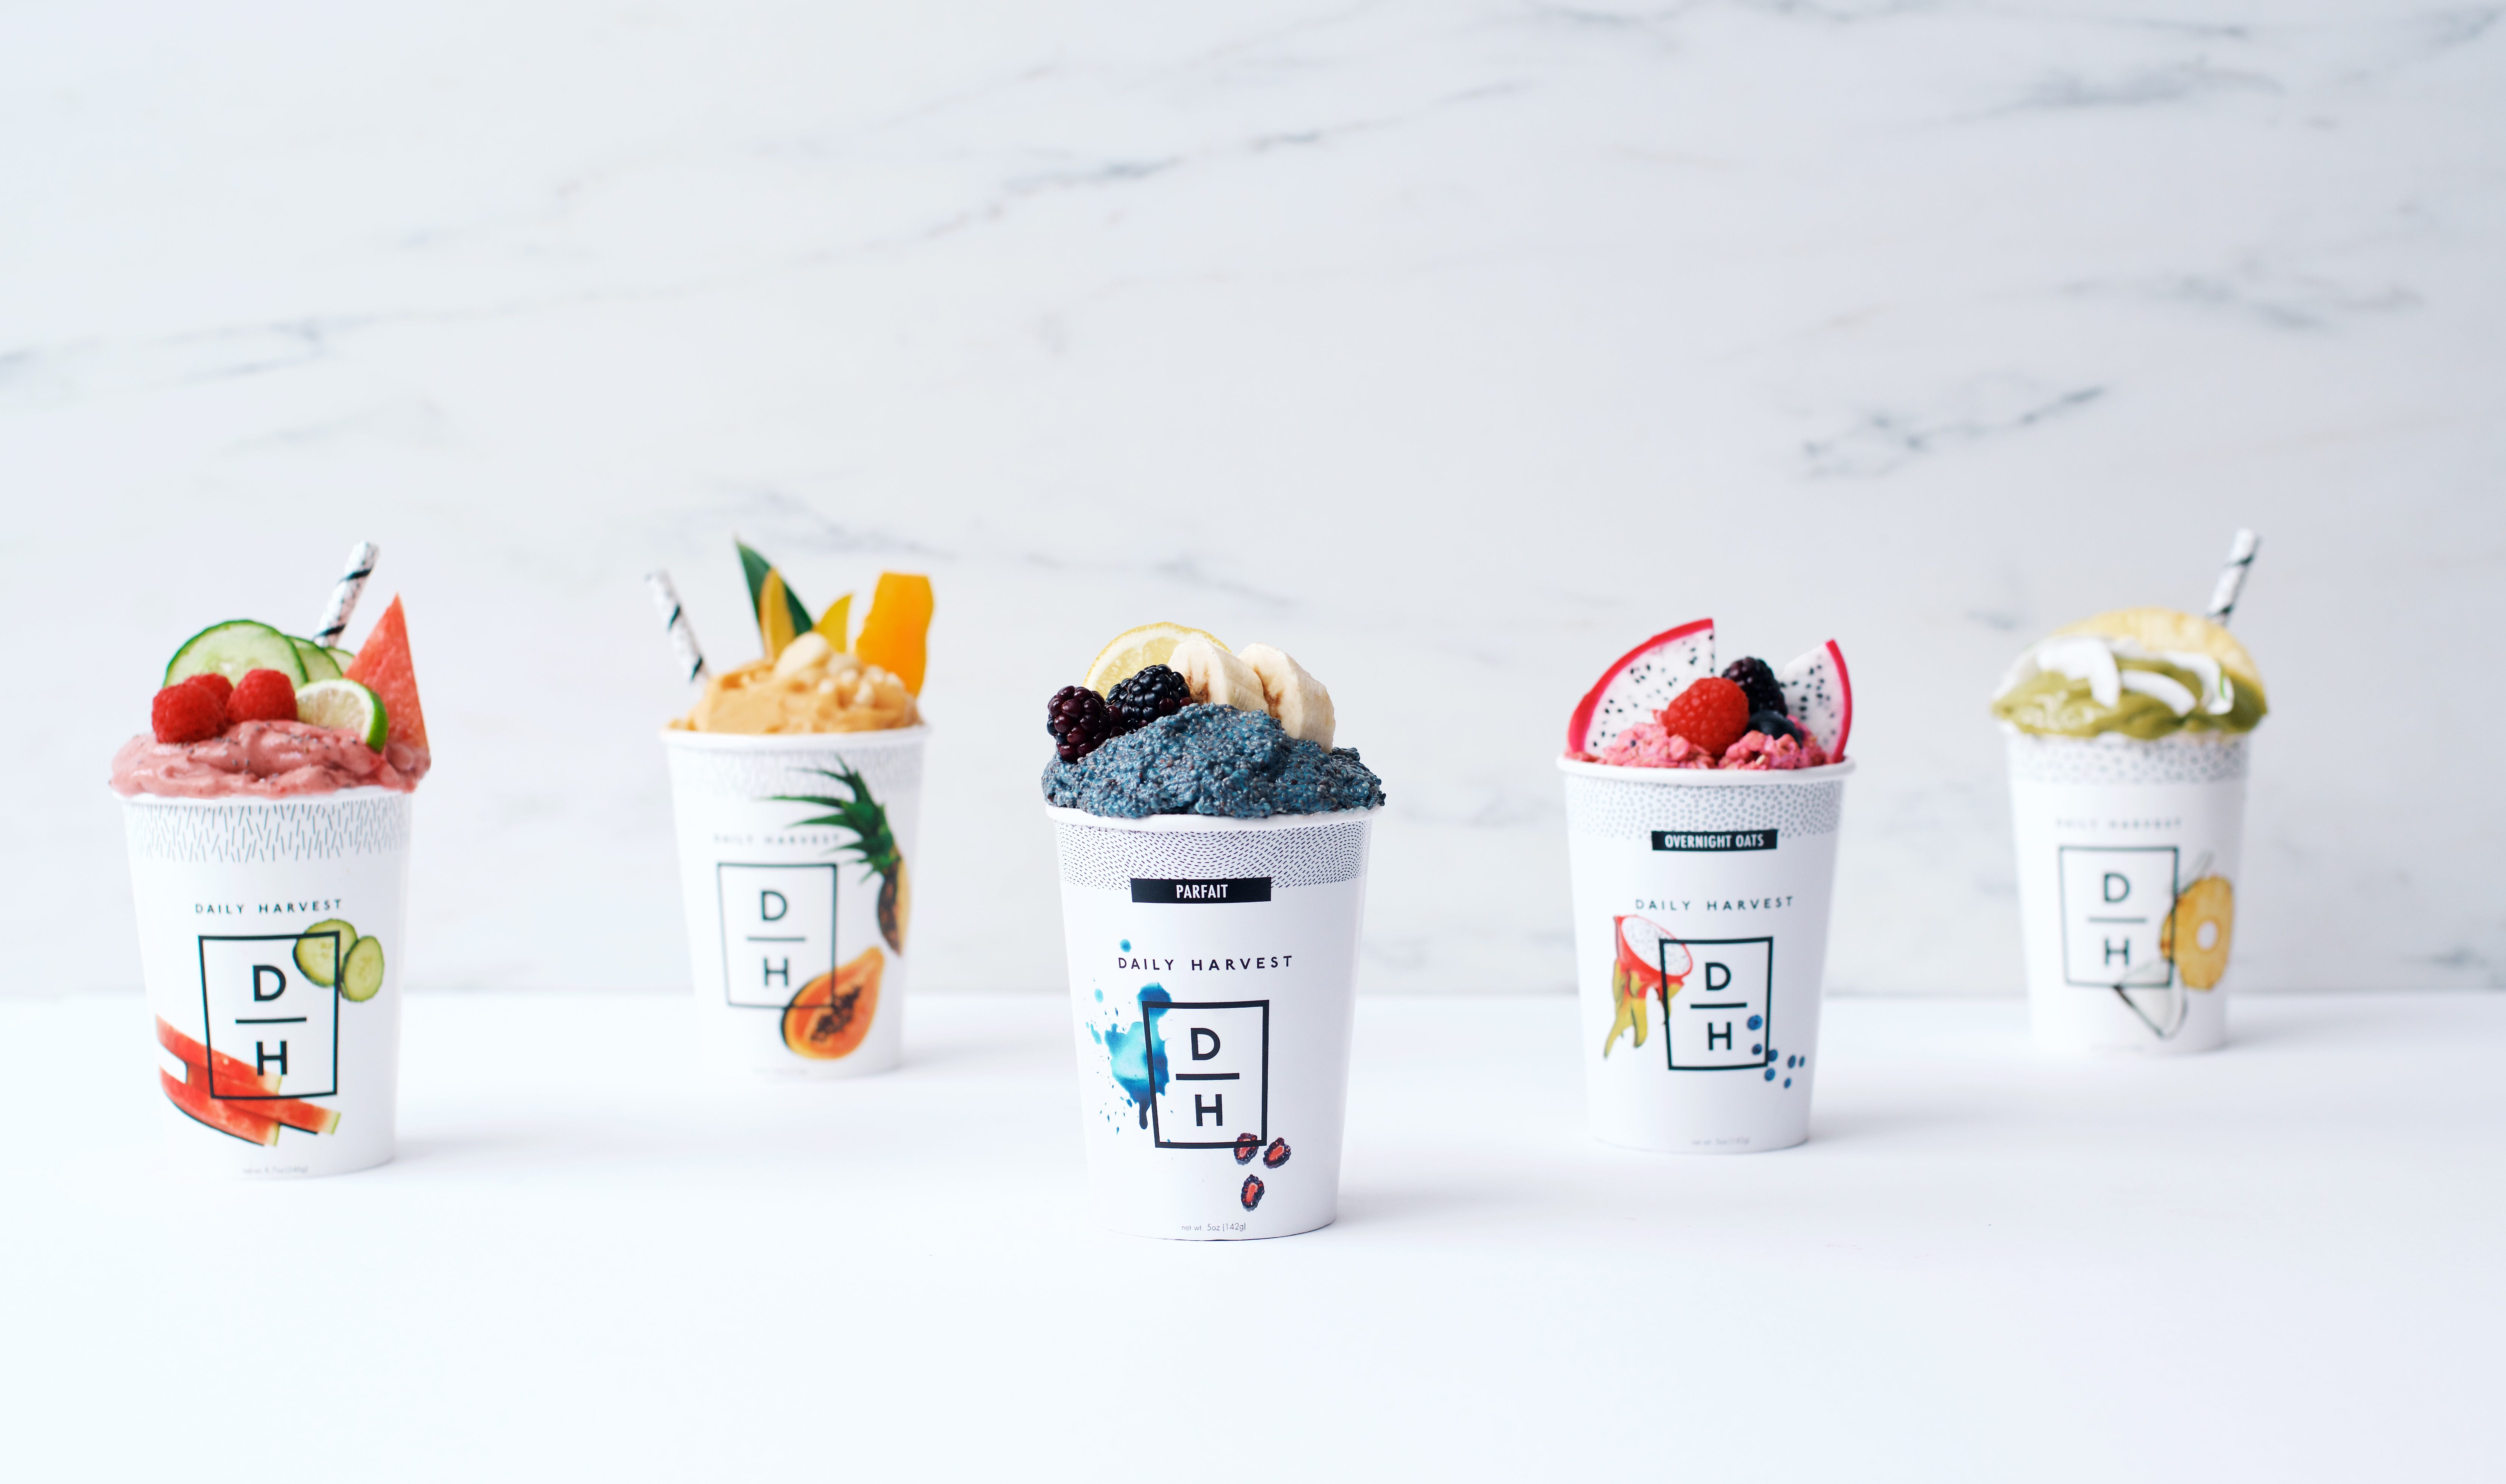 A variety of Daily Harvest cups on a counter